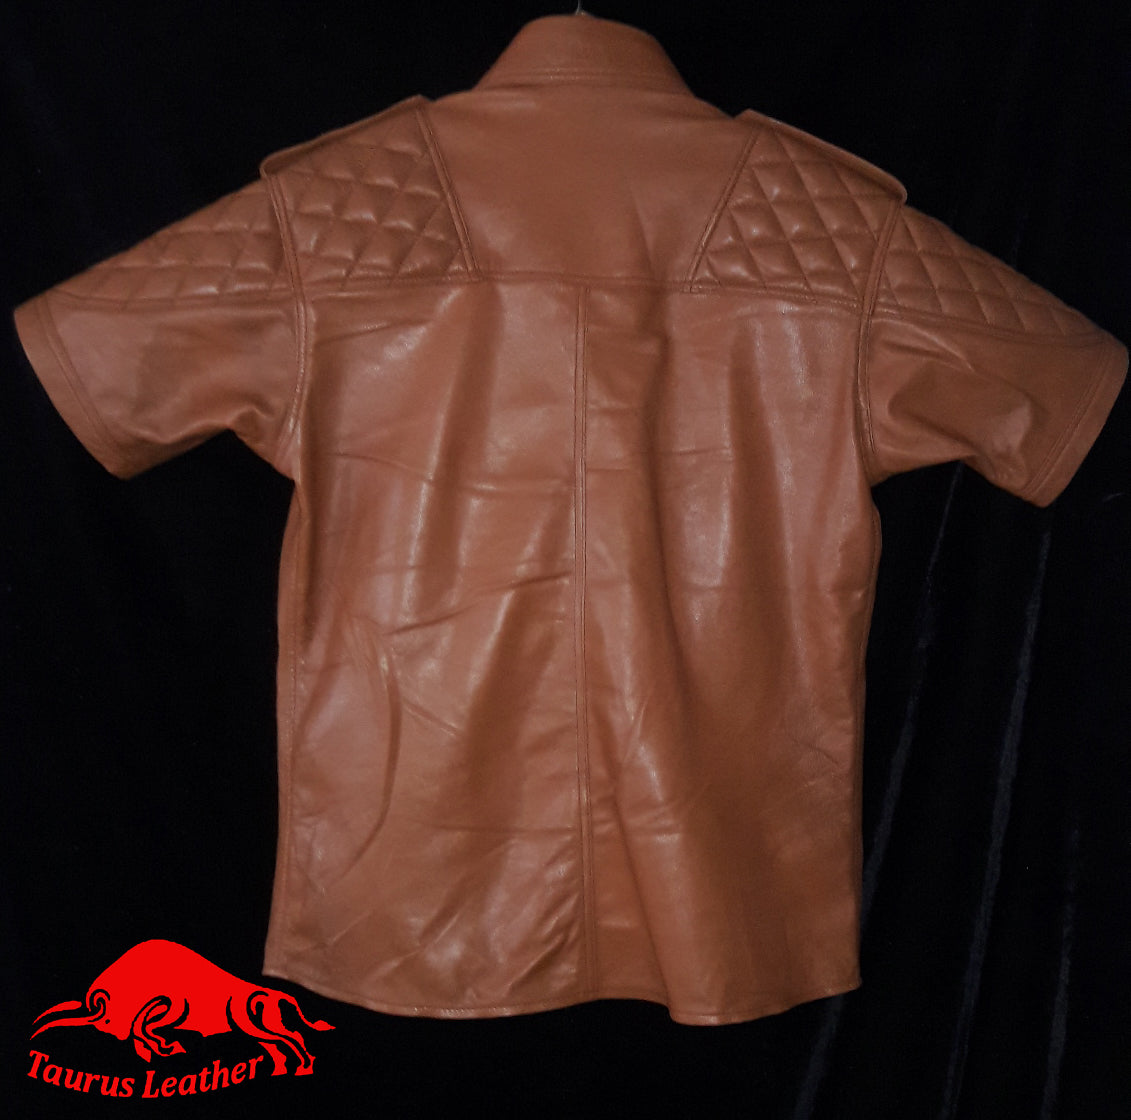 TAURUS LEATHER Sheep Leather Tank Color Shirt With Shoulder Padded Design